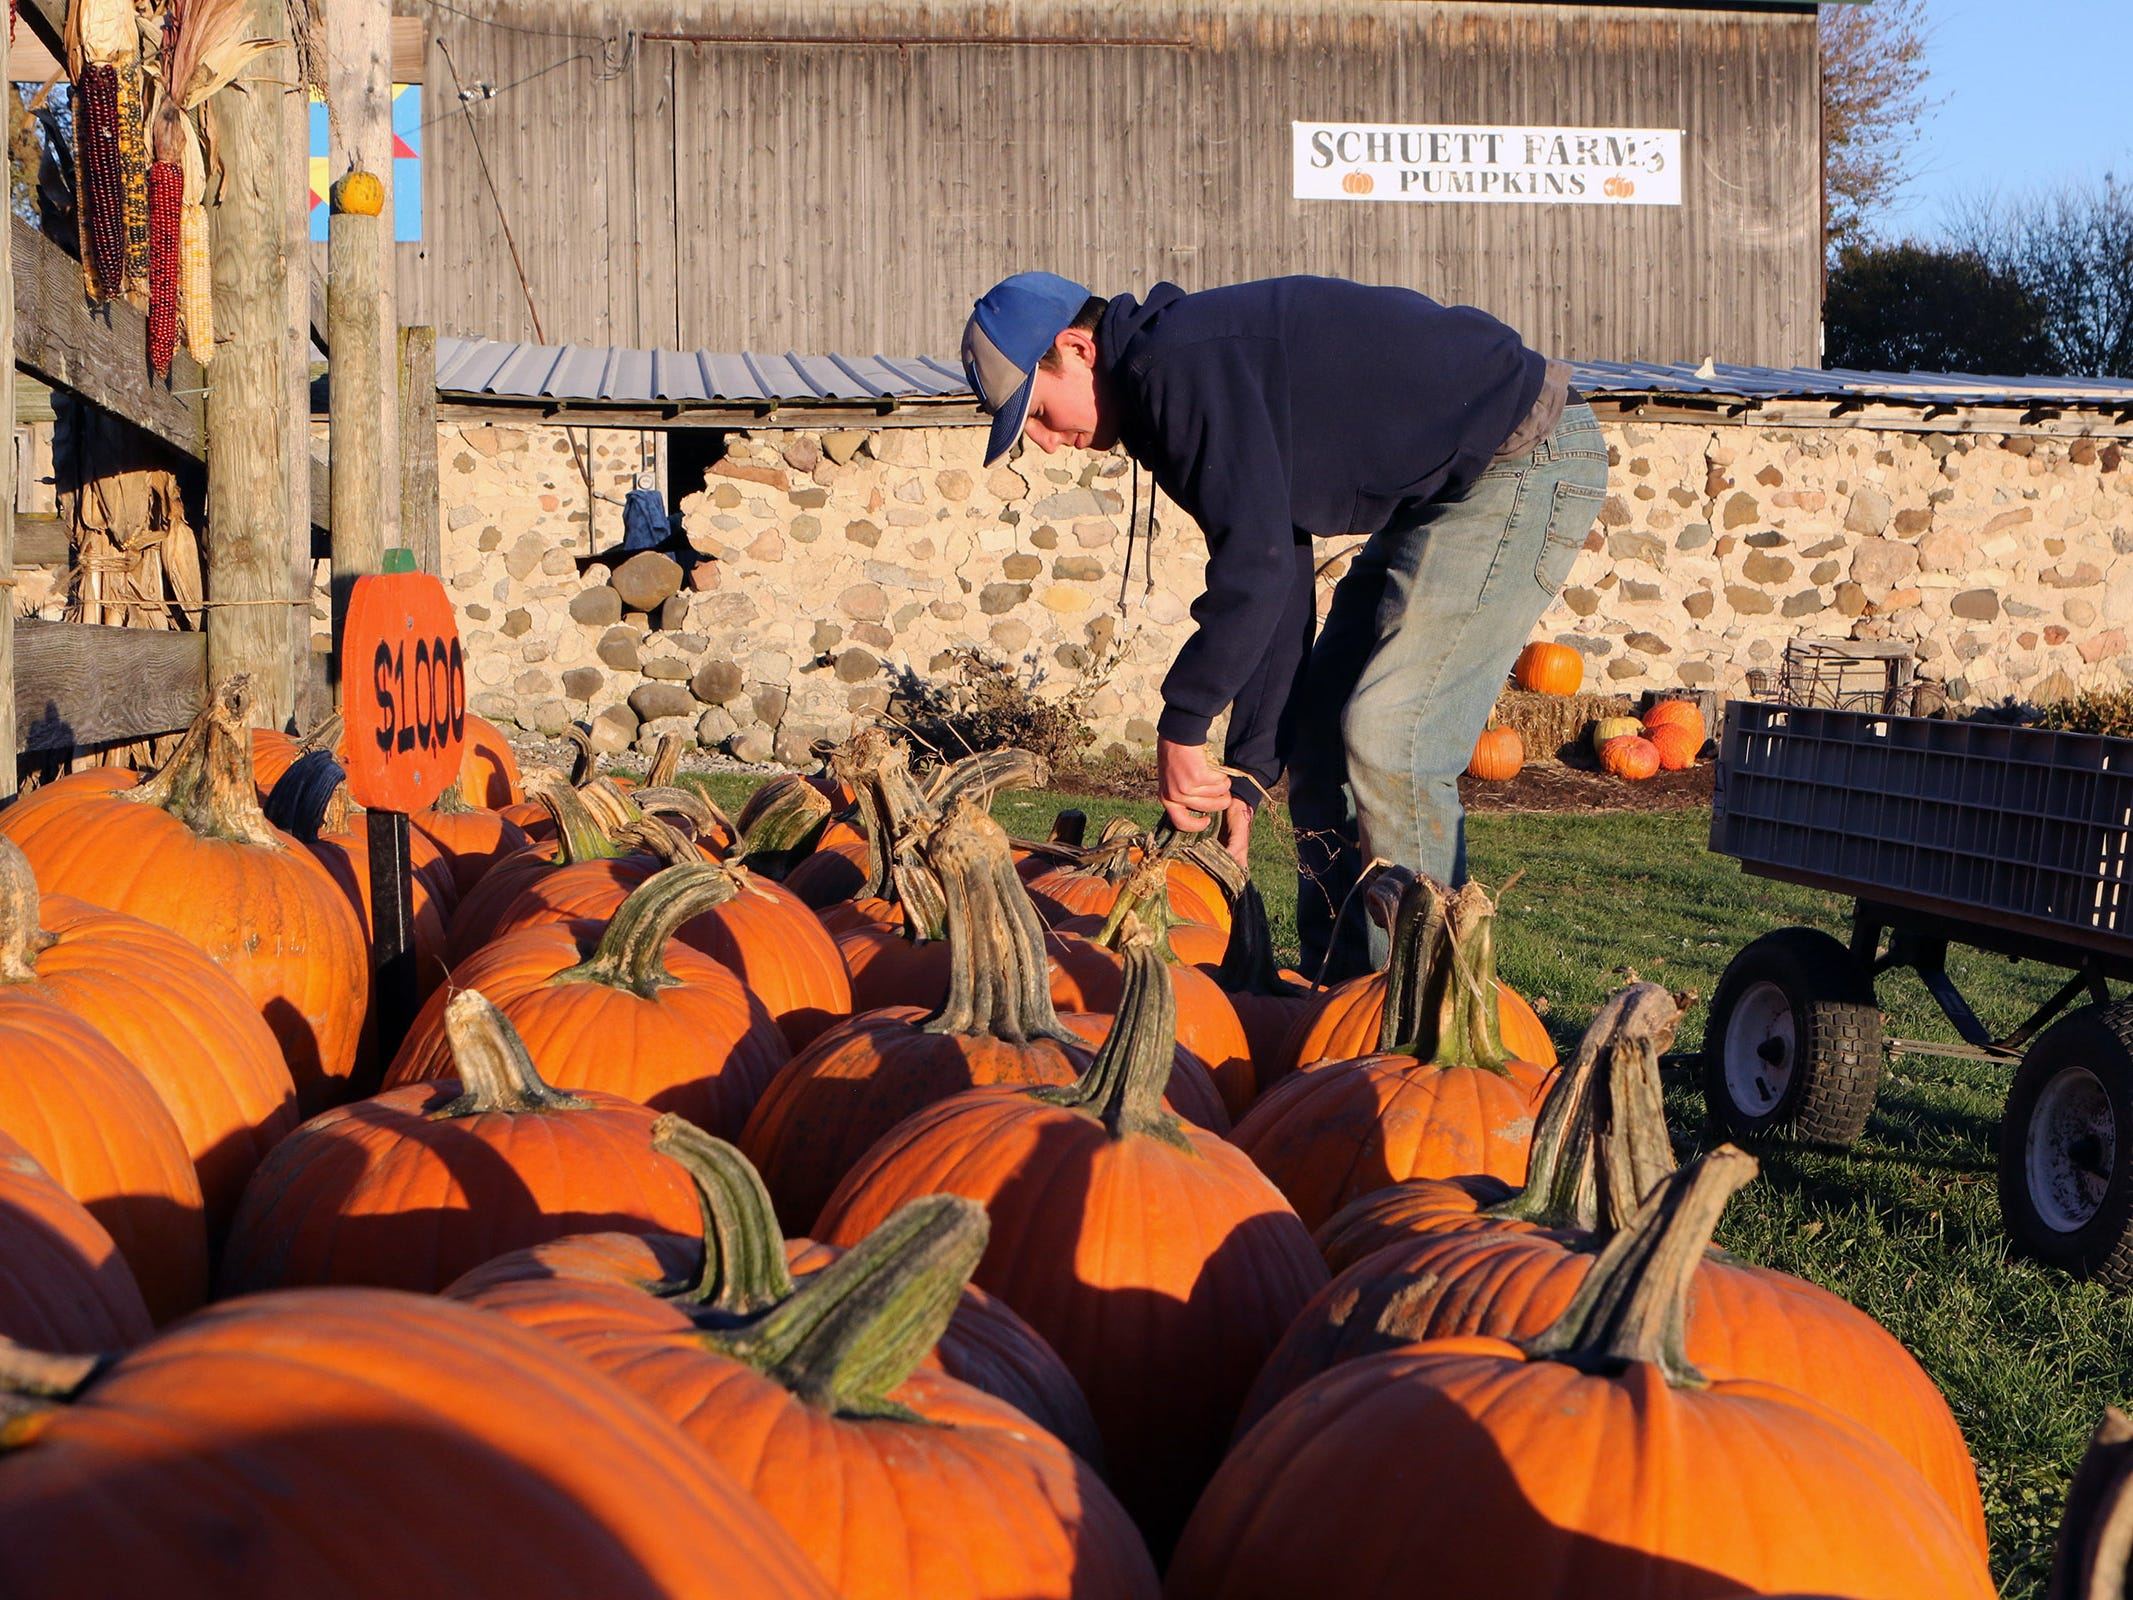 Matthew Deering, Mukwonago, sets out pumpkins for sale at Schuett Farms in Mukwonago on Oct. 22.